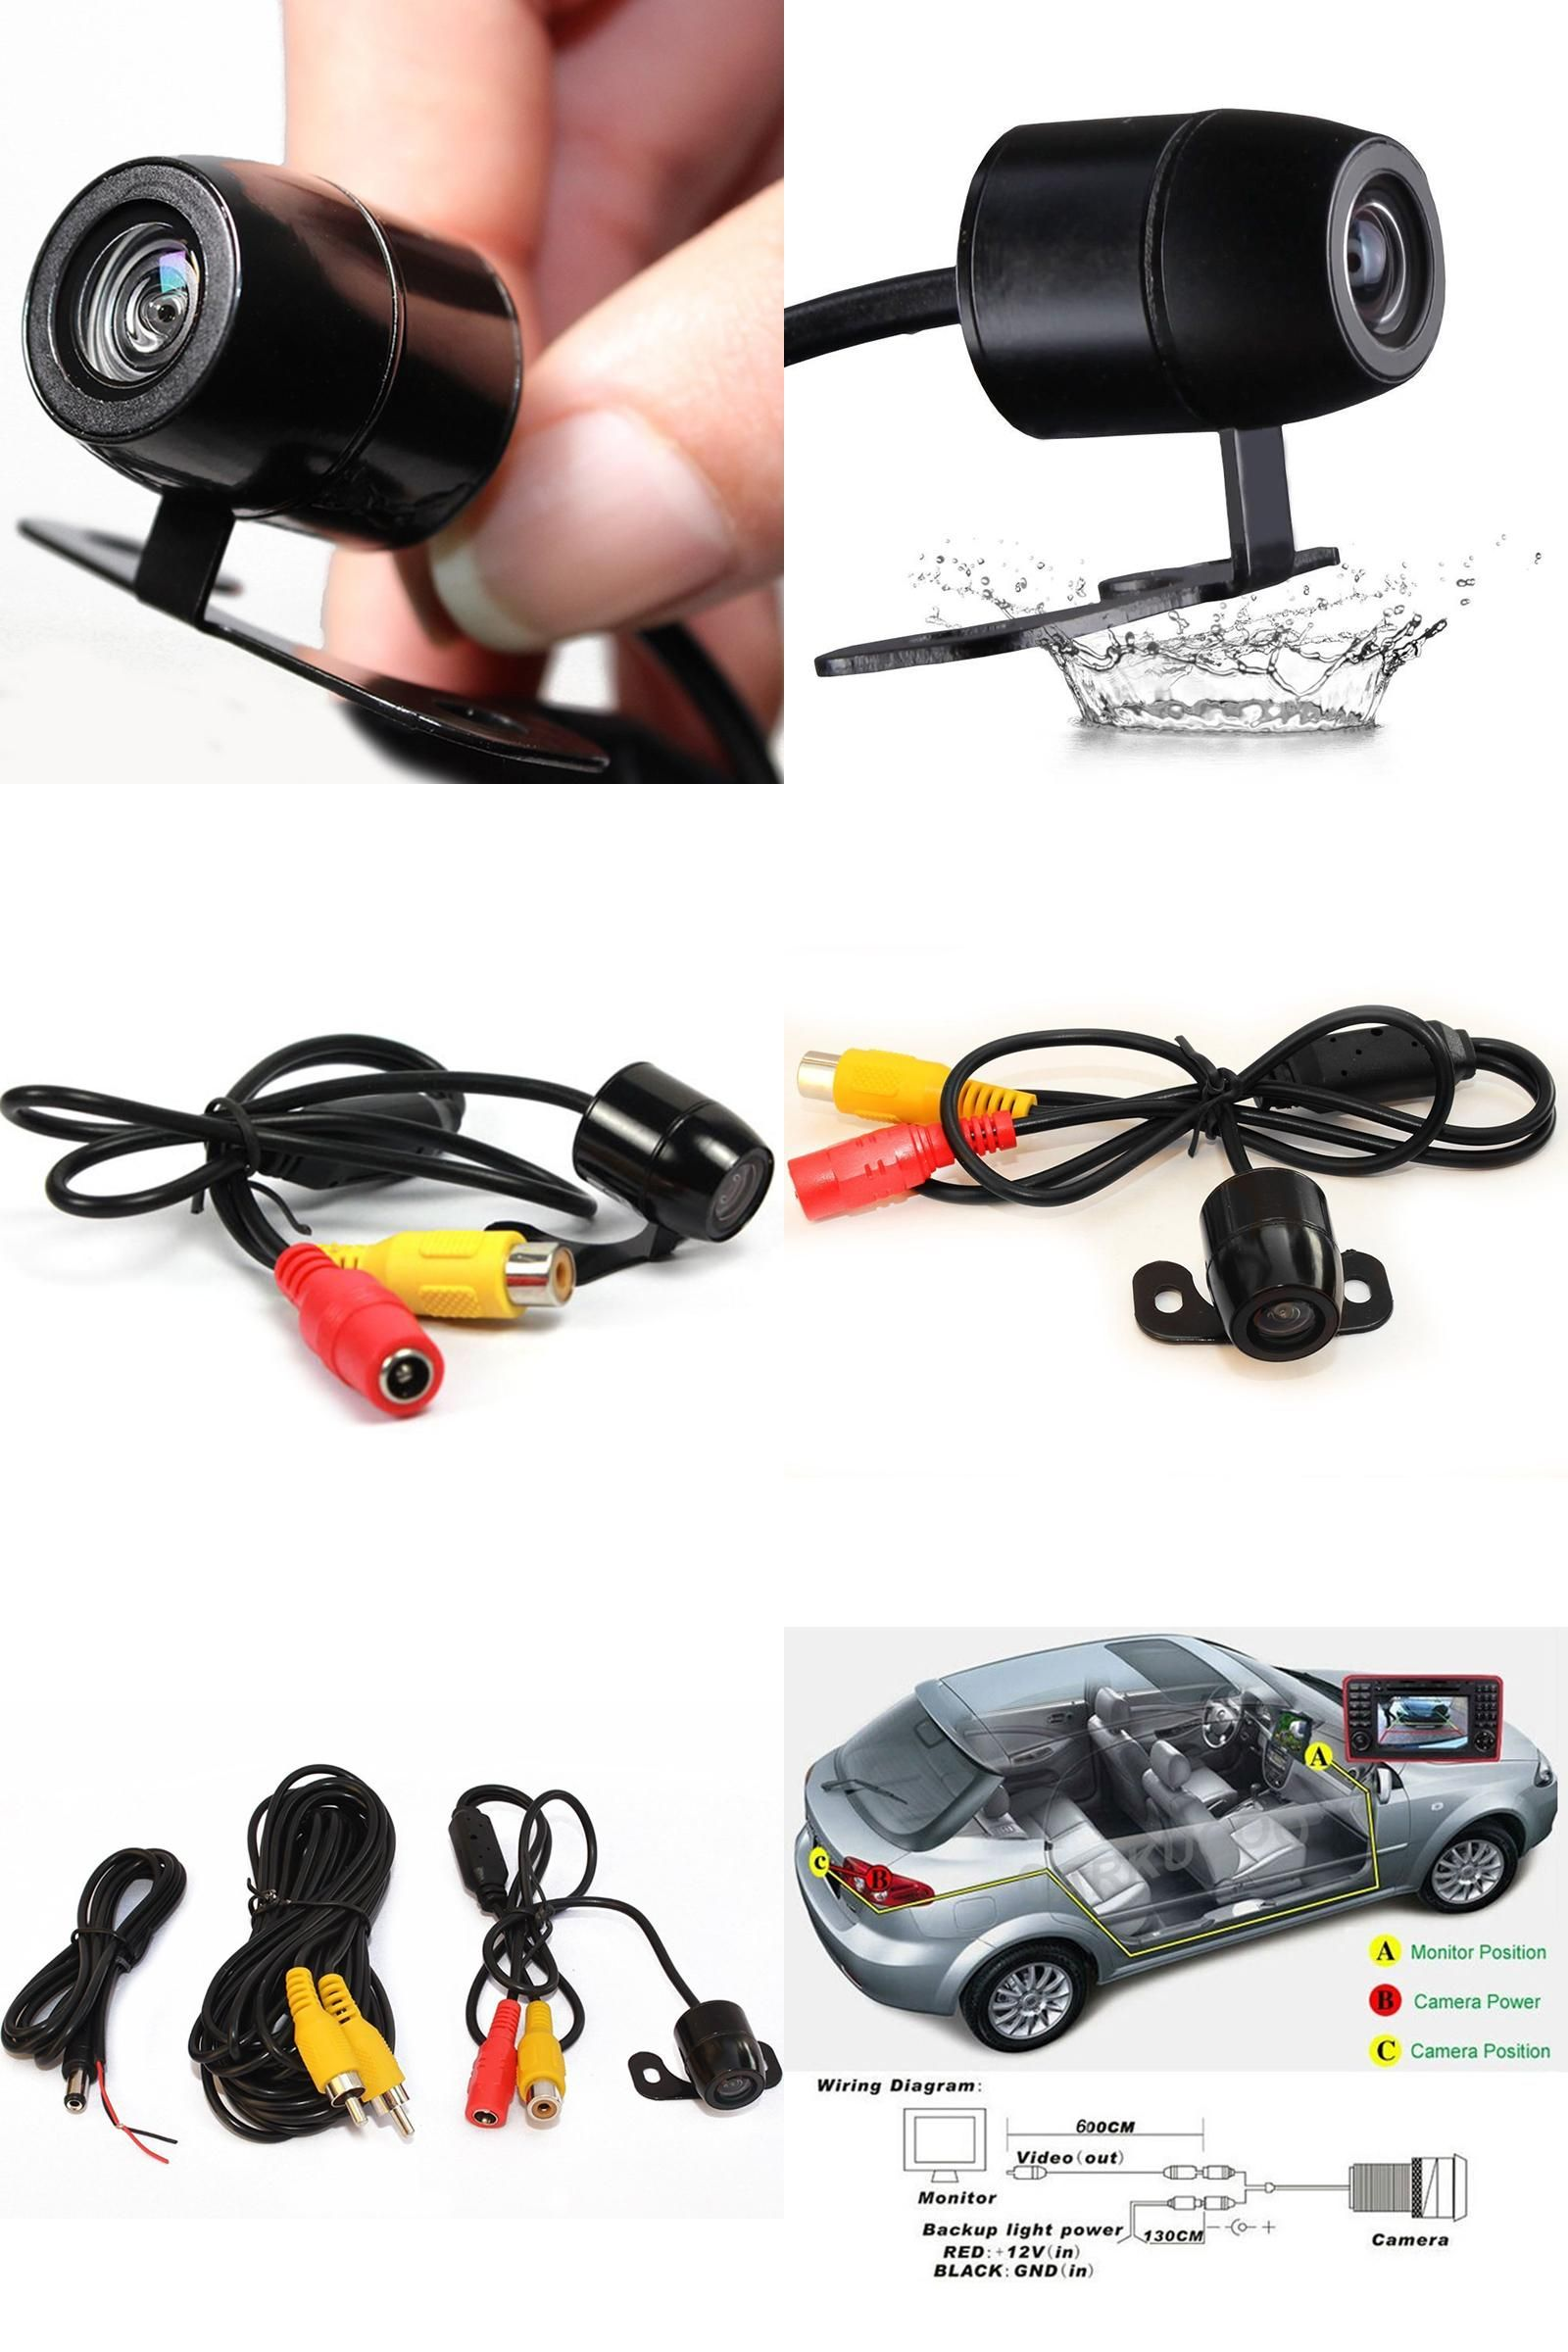 Visit to buy auto parking system hd car rear camera built in visit to buy auto parking system hd car rear camera built in distance asfbconference2016 Image collections